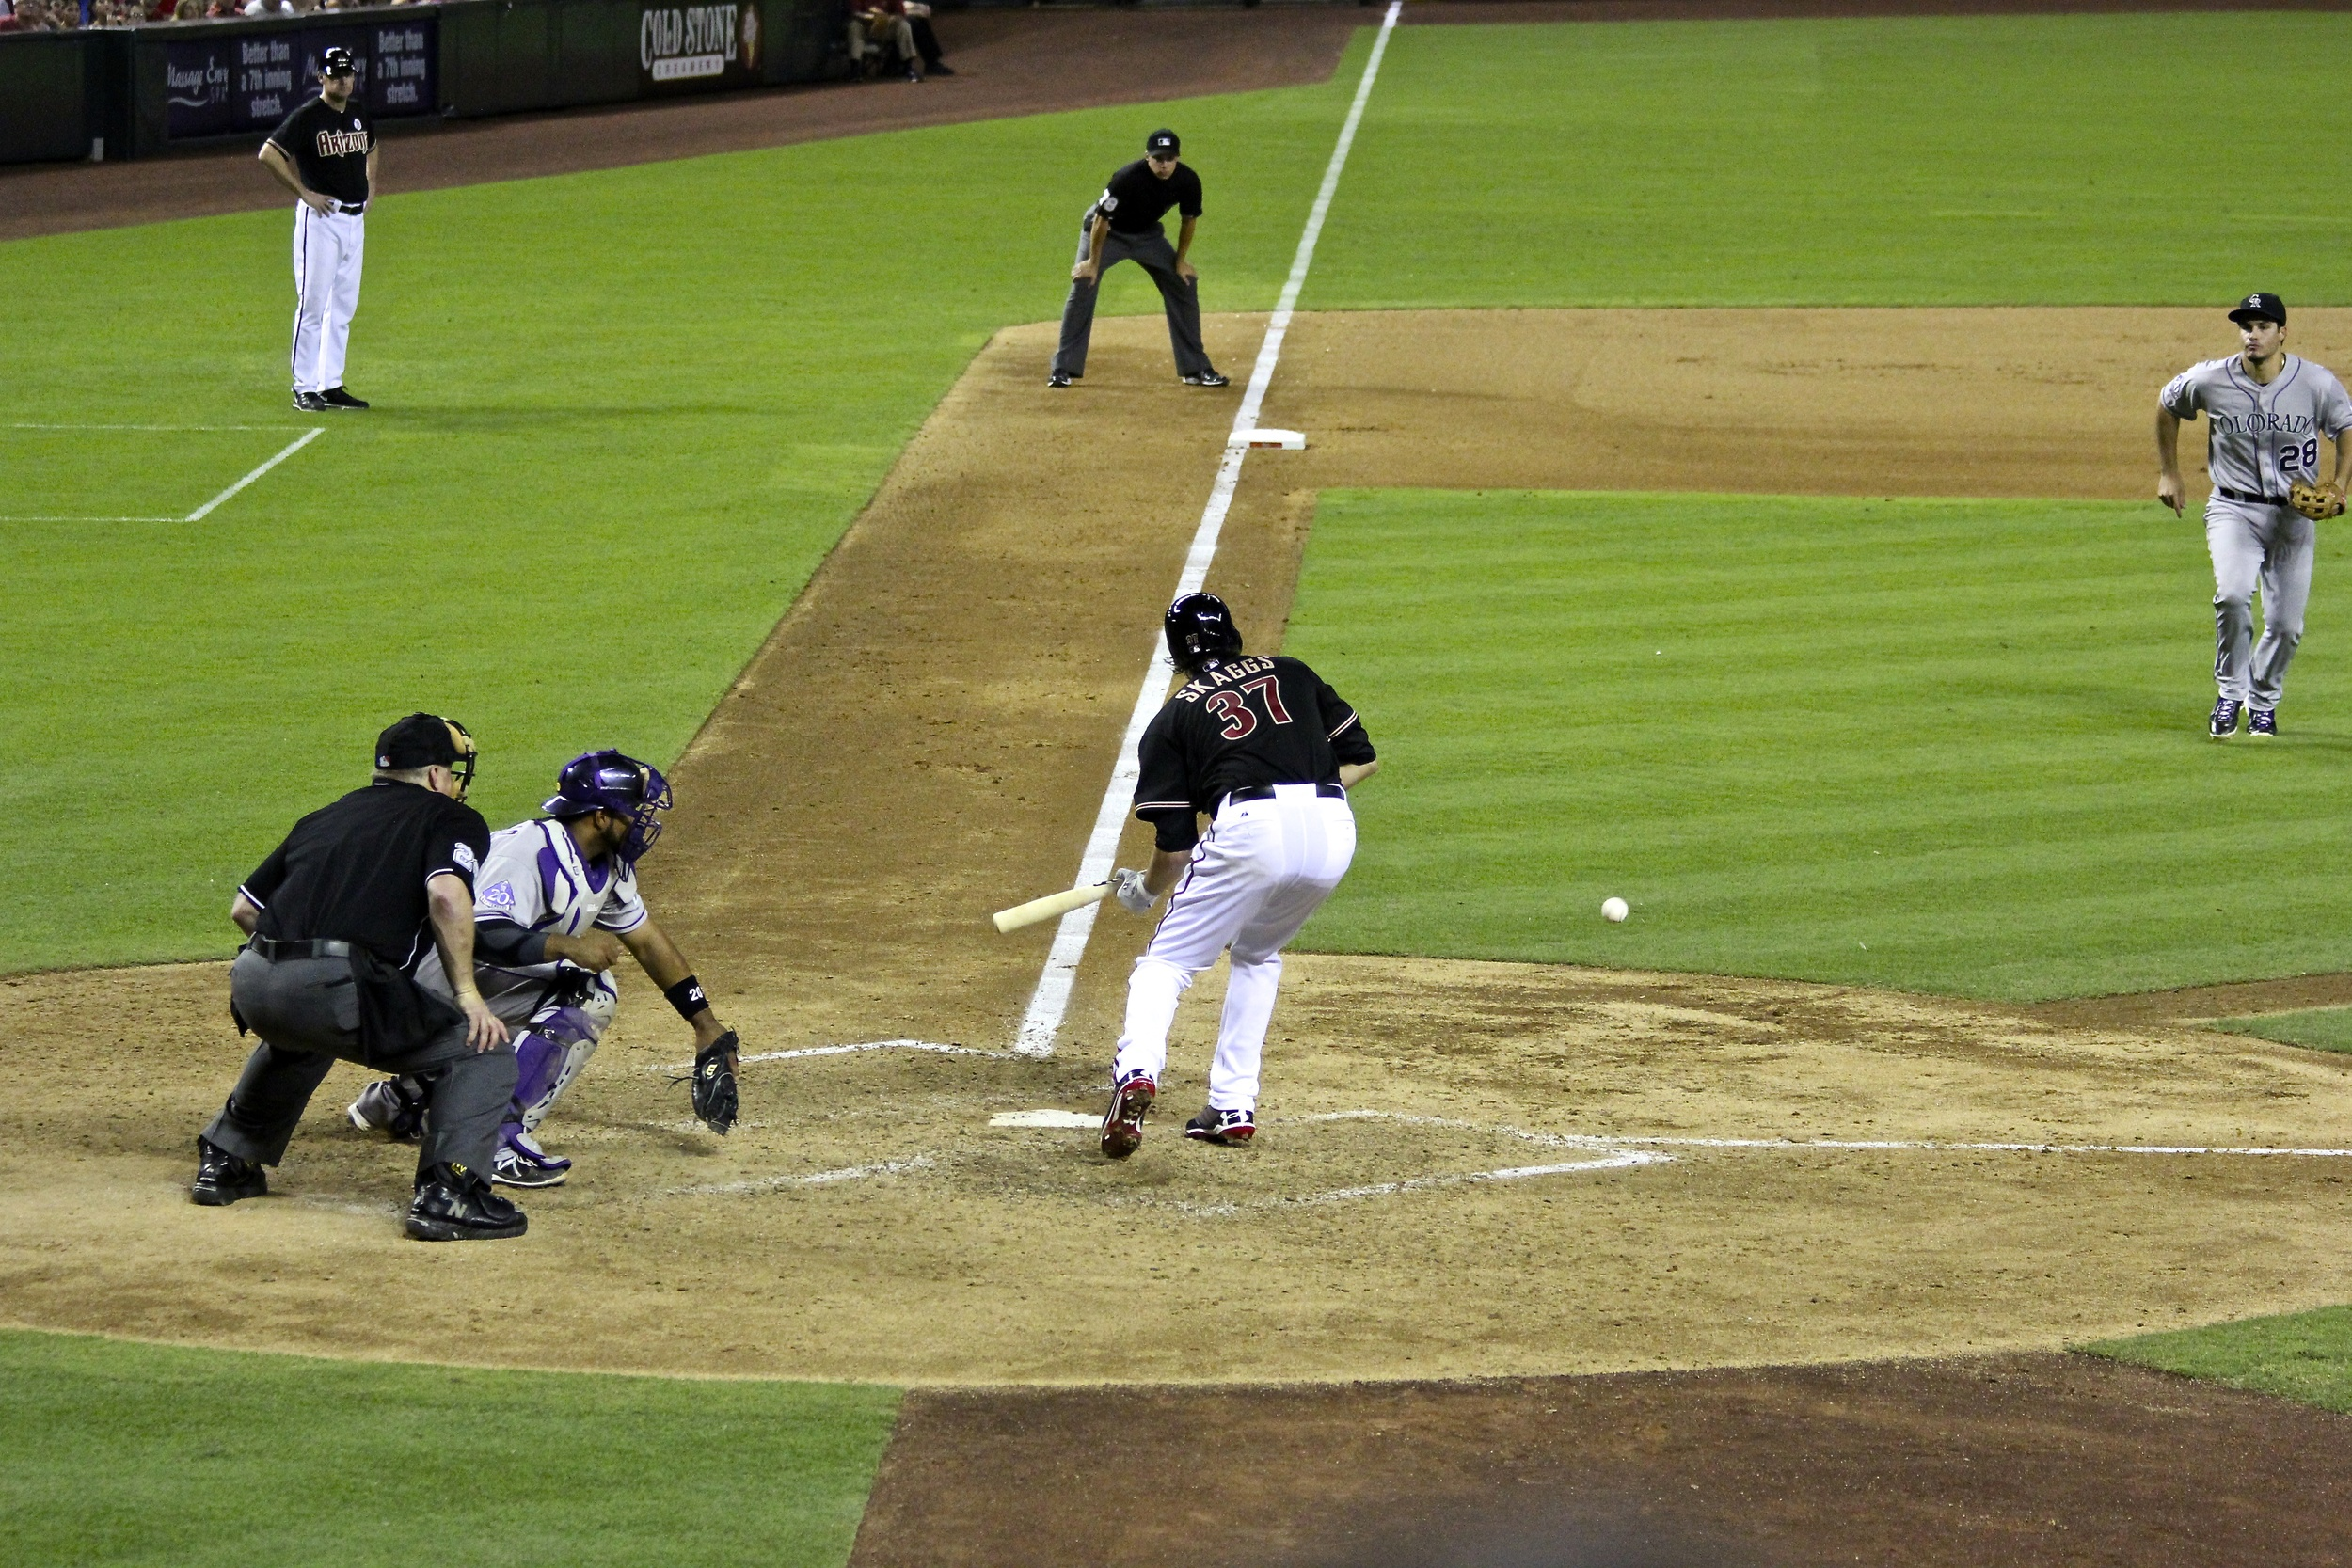 Tyler Skaags lays down a bunt